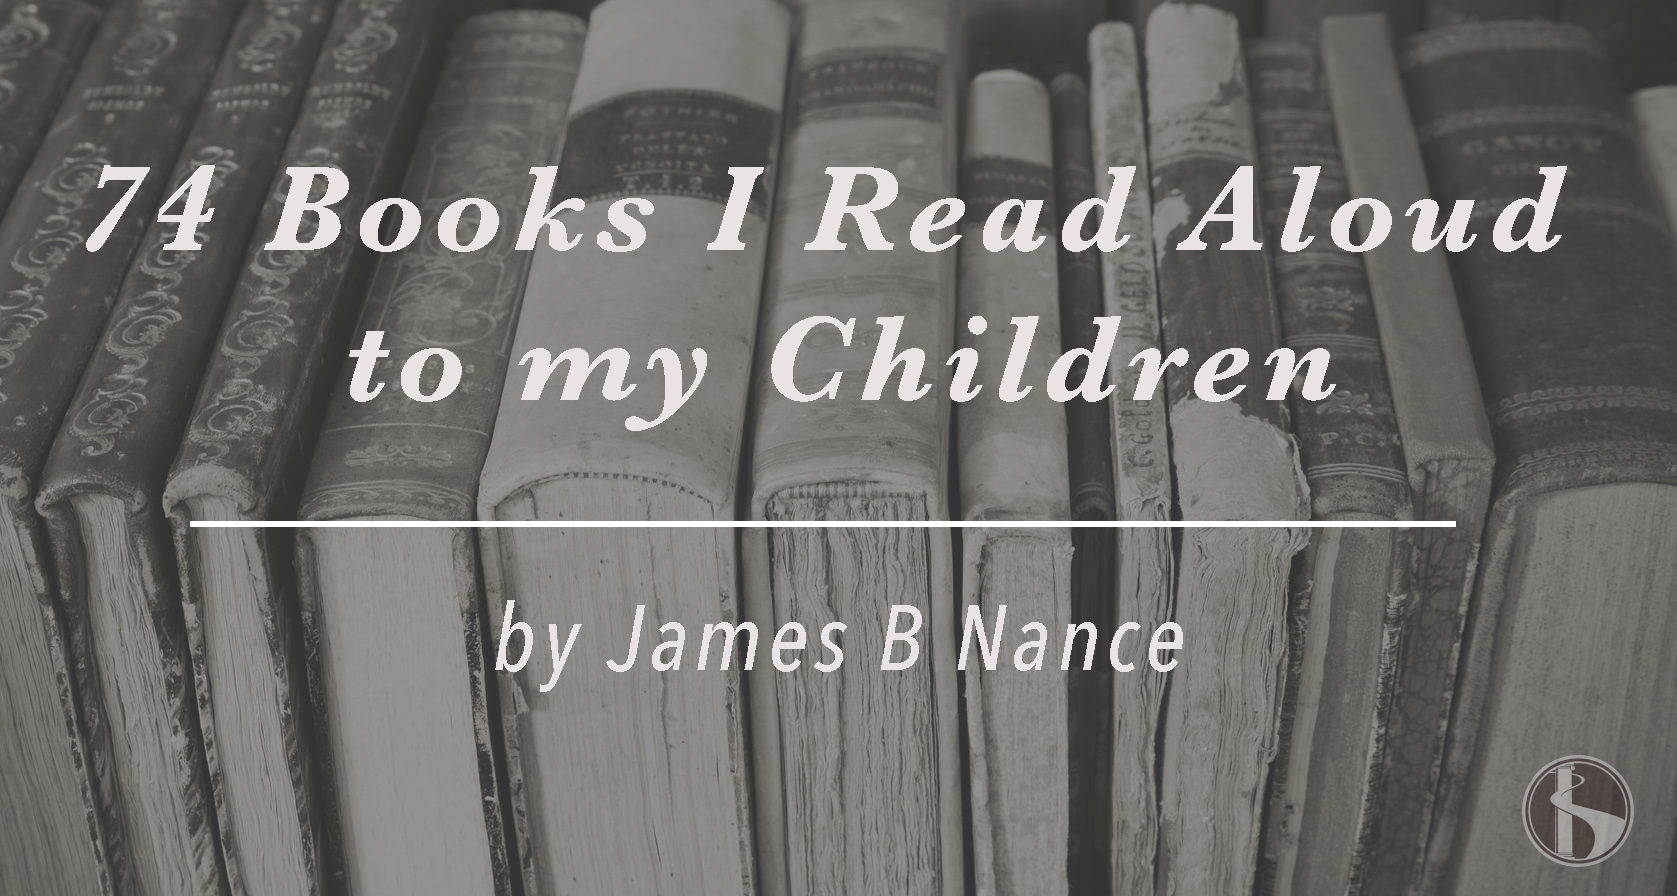 74 Books I Read Aloud to my Children